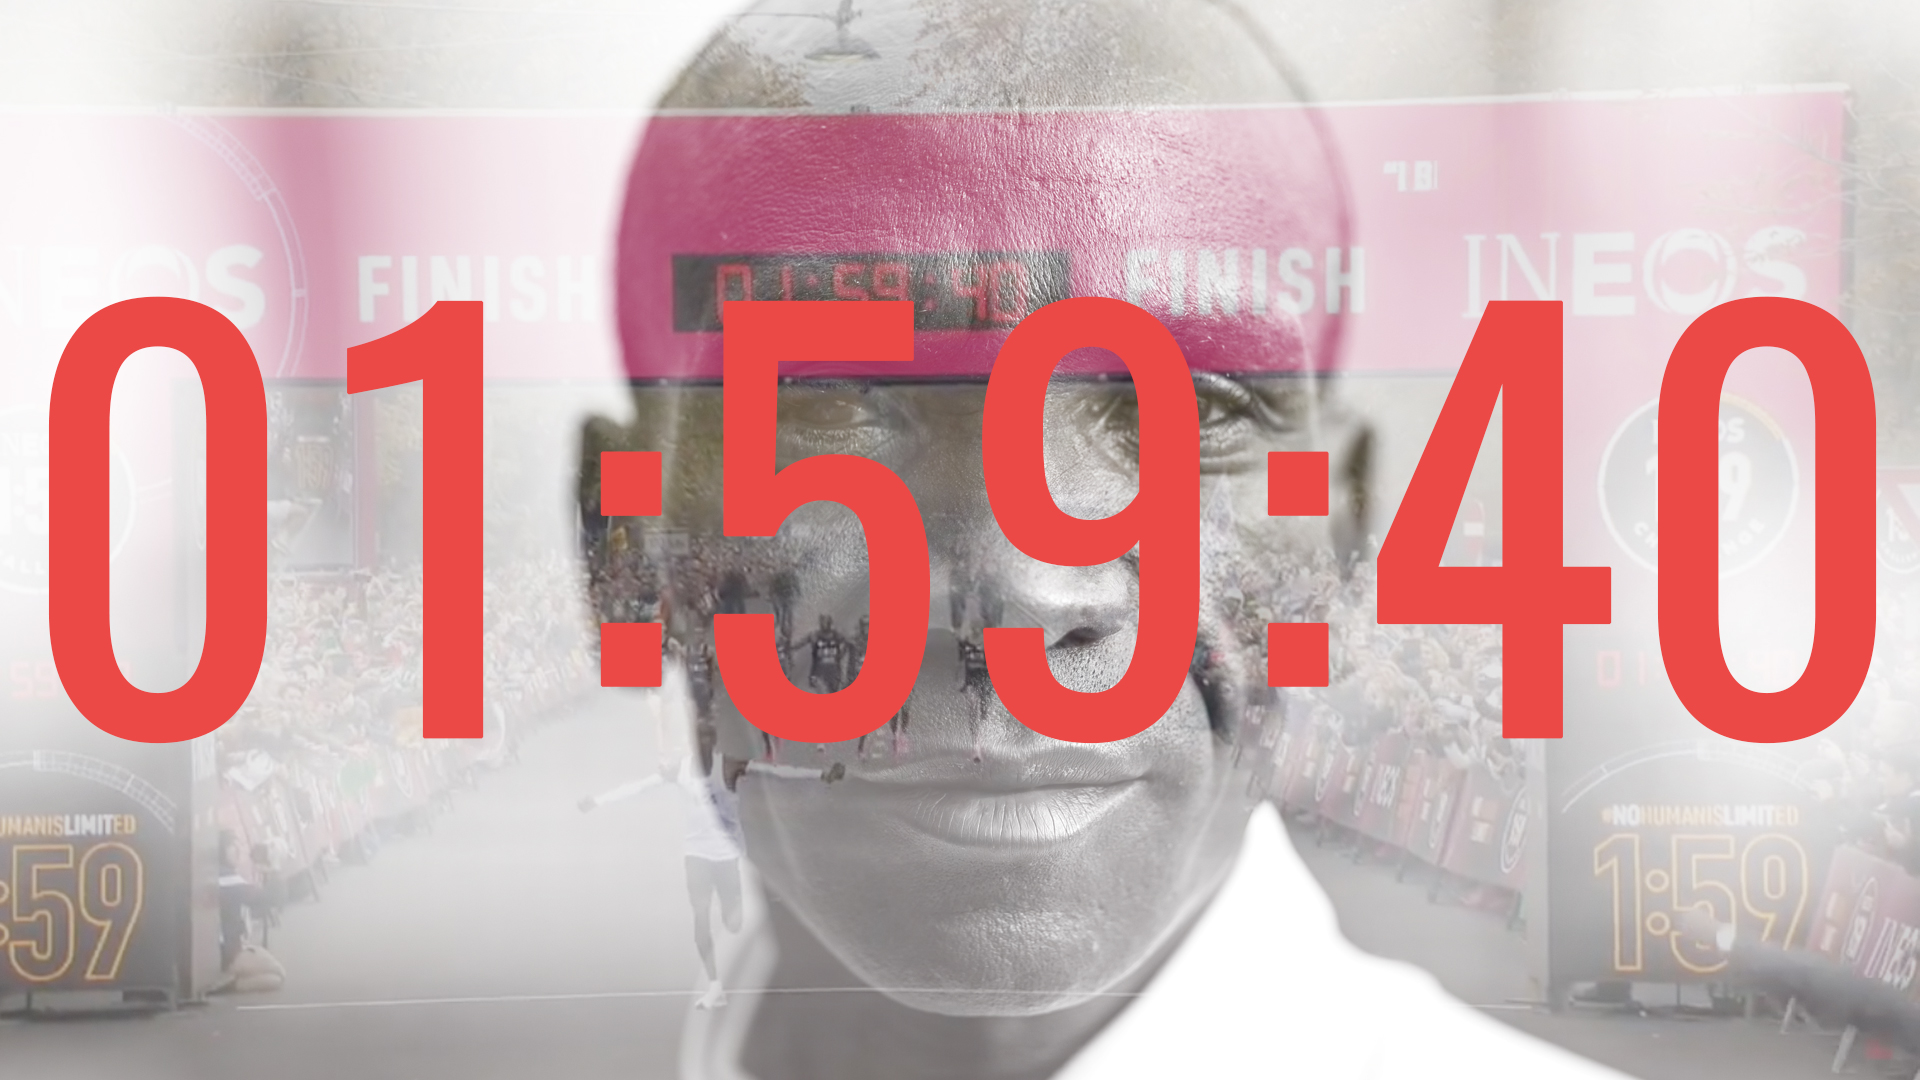 Eliud Kipchoge's 1:59 Challenge is a Sports Marketing Masterclass (and even has lasers)